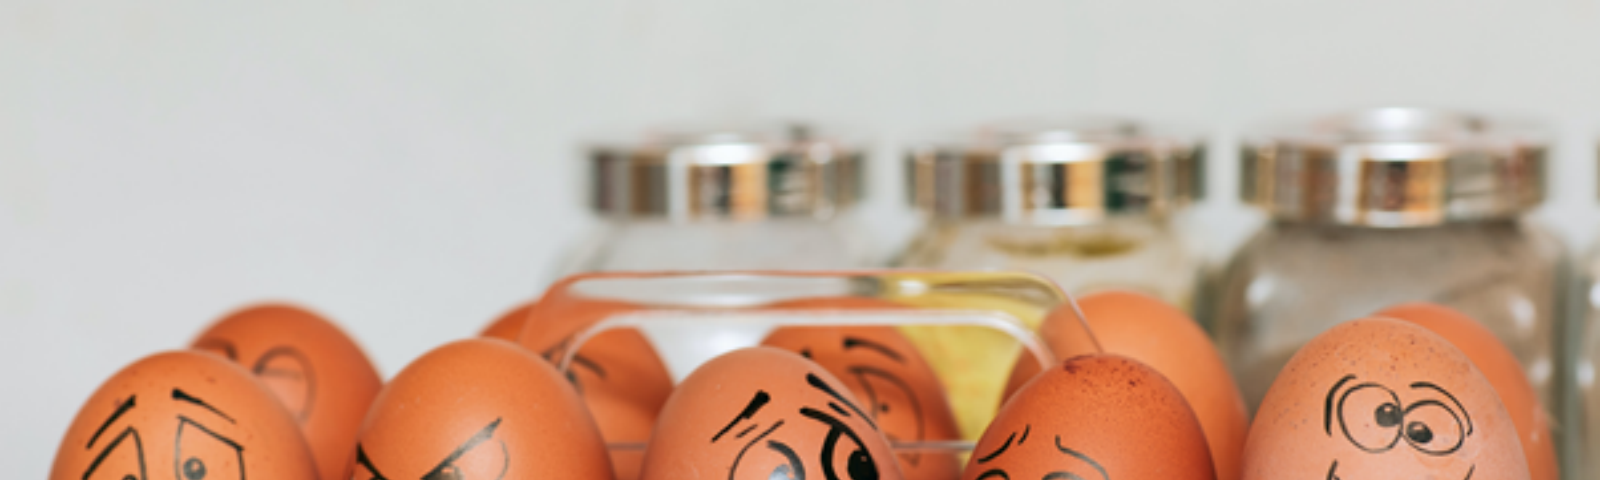 Box of eggs with happy/sad/mad faces.